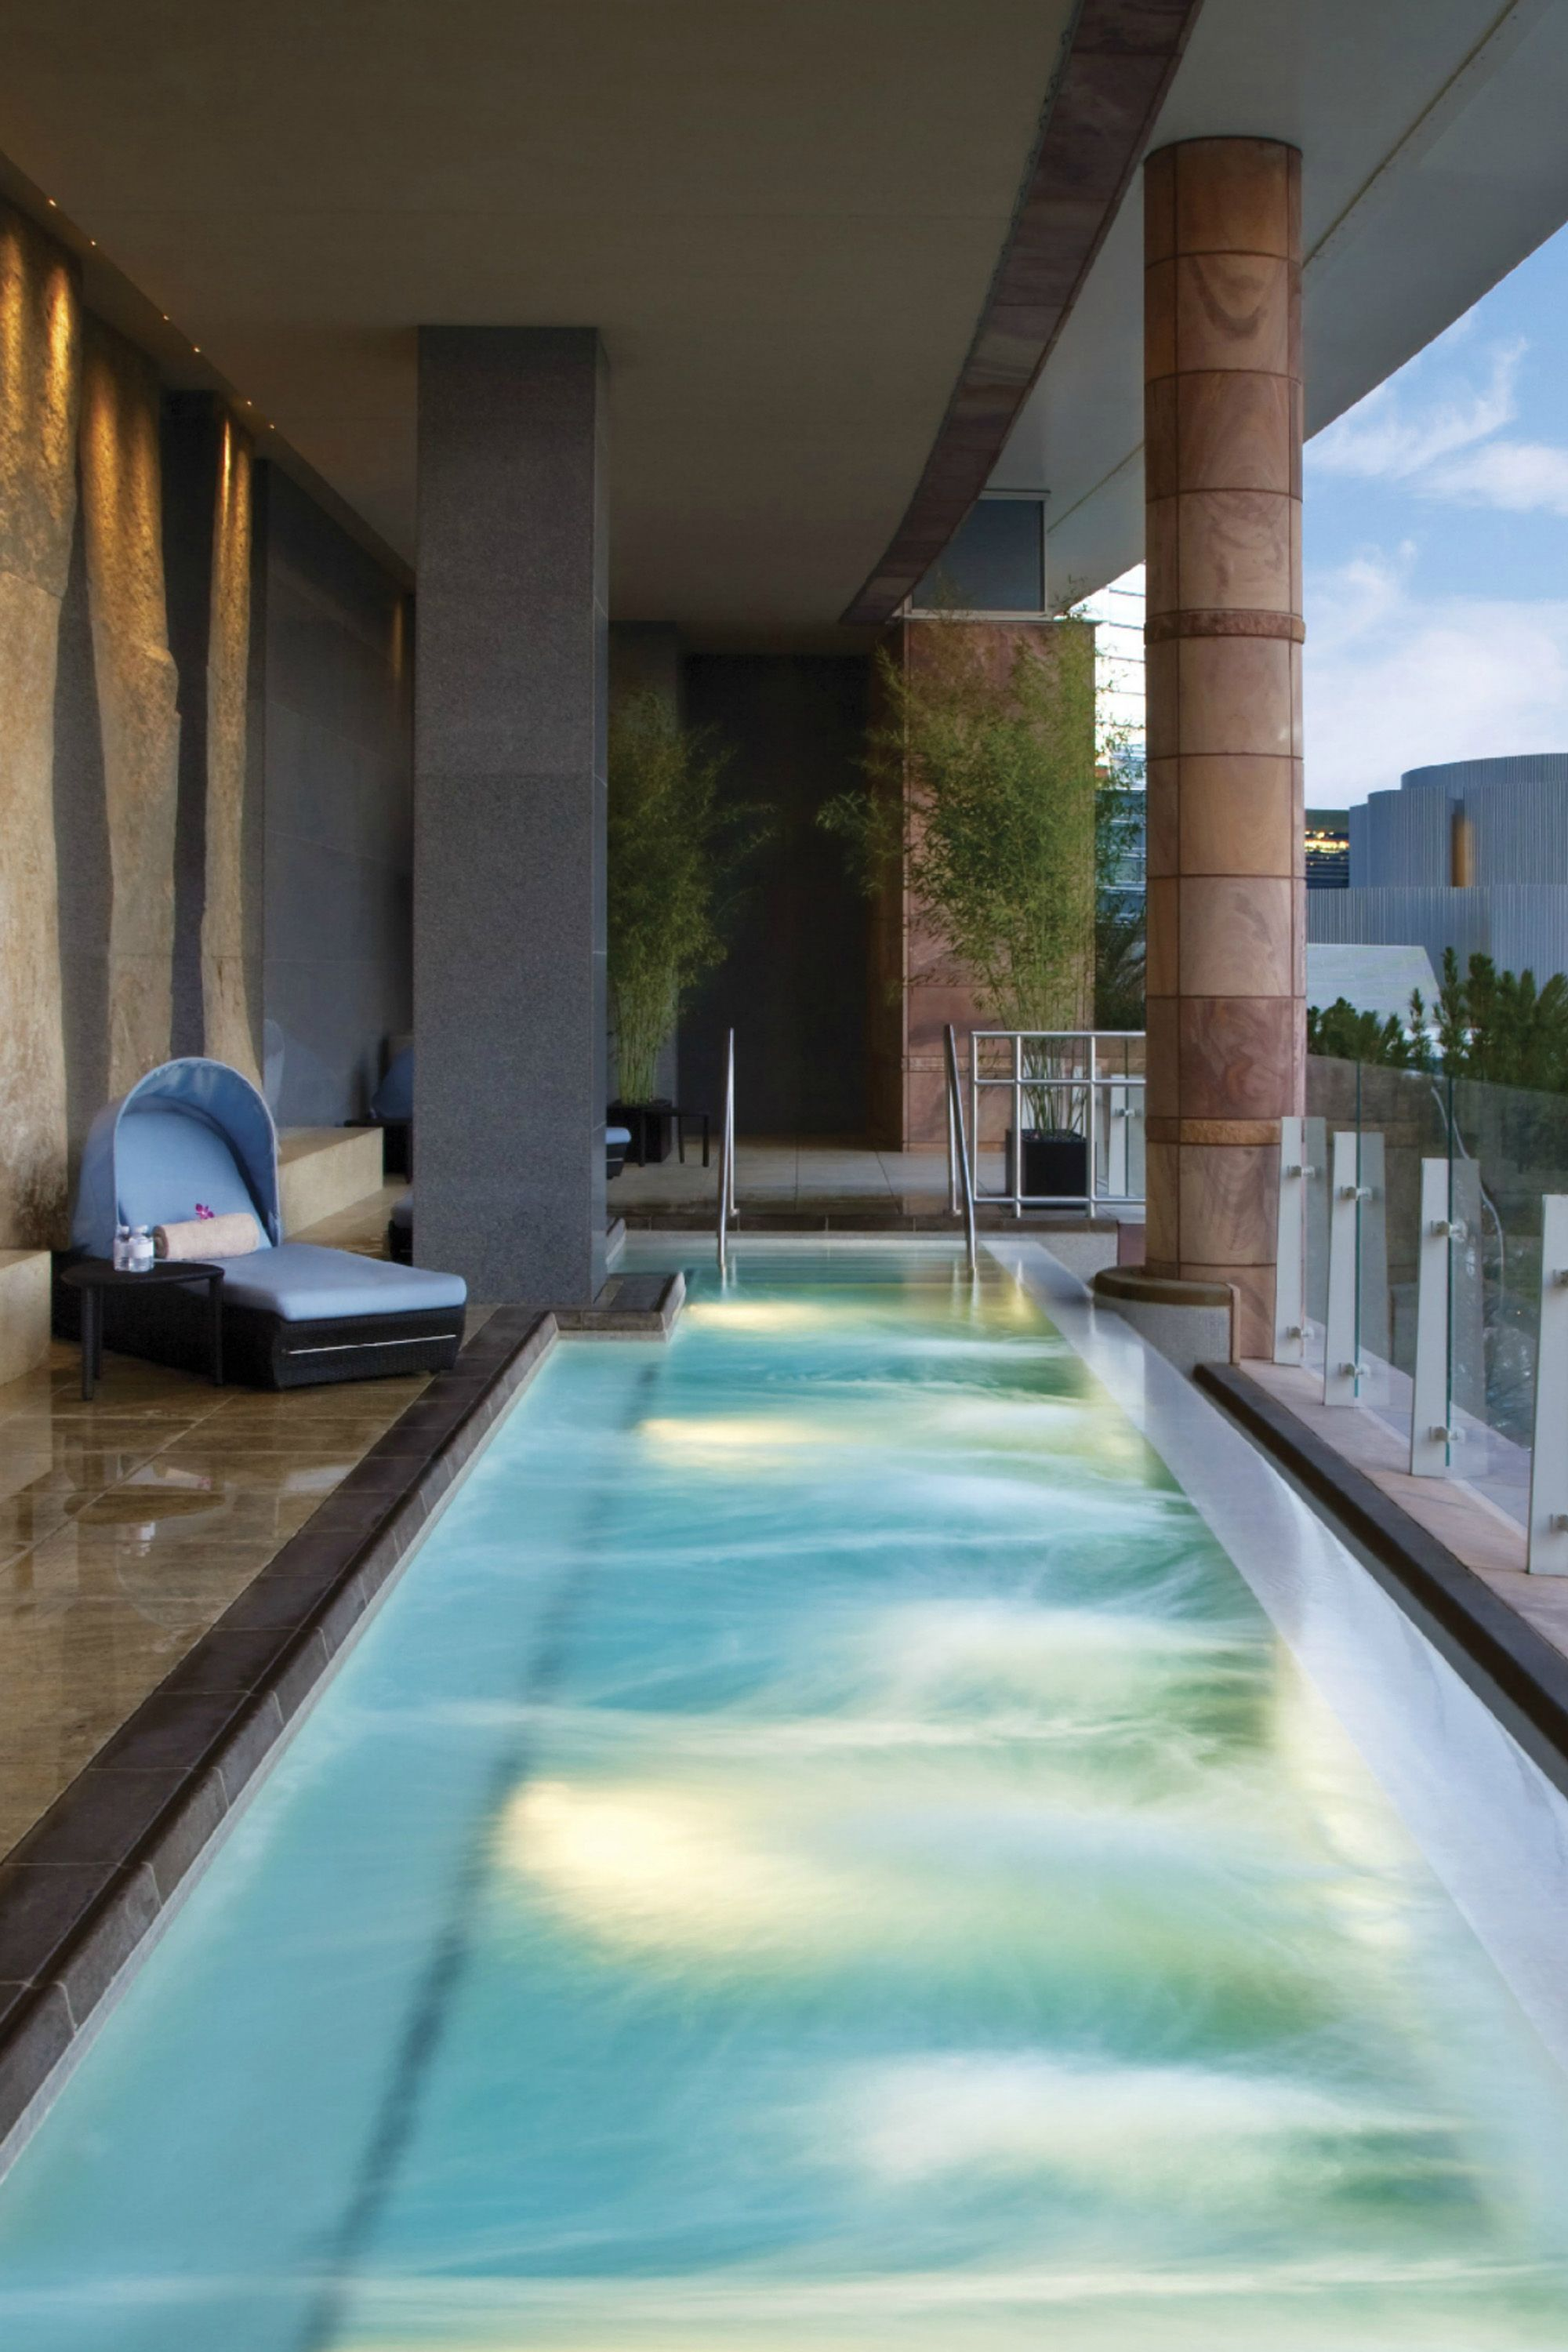 "<p><strong>Where:</strong> <a href=""http://www.vdara.com/"" target=""_blank"">Vdara Hotel & Spa</a></p><p><strong>Spa Highlights: </strong>The ESPA Spa at Vegas's Vdara Hotel comprises two floors full of relaxing European heat treatments and therapies. Taking a holistic approach, the spa offers personalized treatments that cater to each individual's needs. A full fitness center, smoothie bar, pool lounge as well as Salon Vdara round out the spa's offerings. The full service salon offers guests luxe manicures, pedicures, makeup artistry and hair services. </p>"